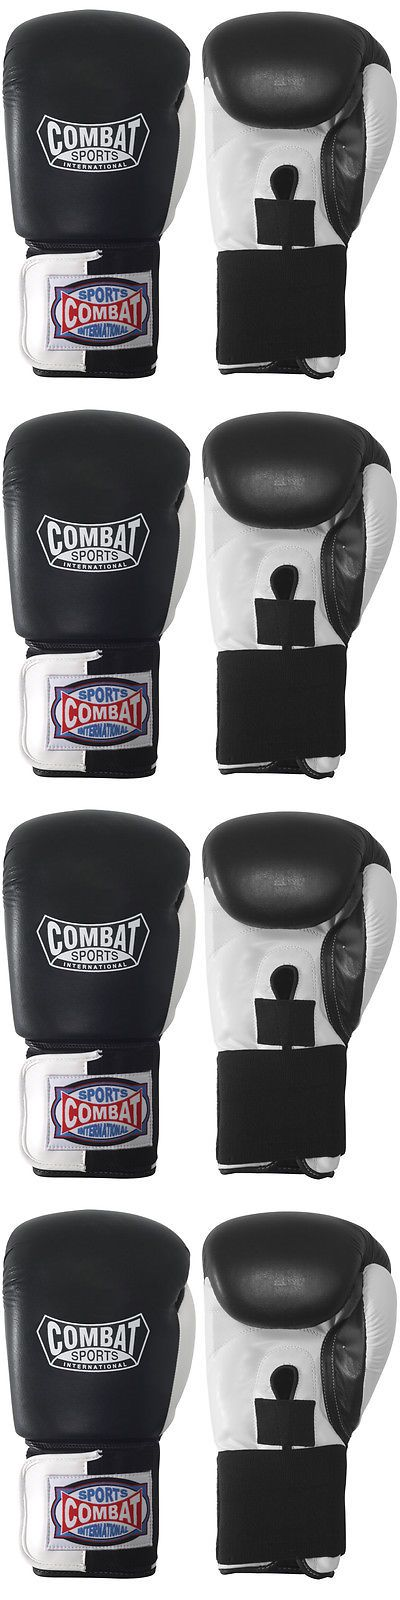 Gloves - Boxing 30102: Combat Sports Boxing Sparring Gloves -> BUY IT NOW ONLY: $33.99 on eBay!